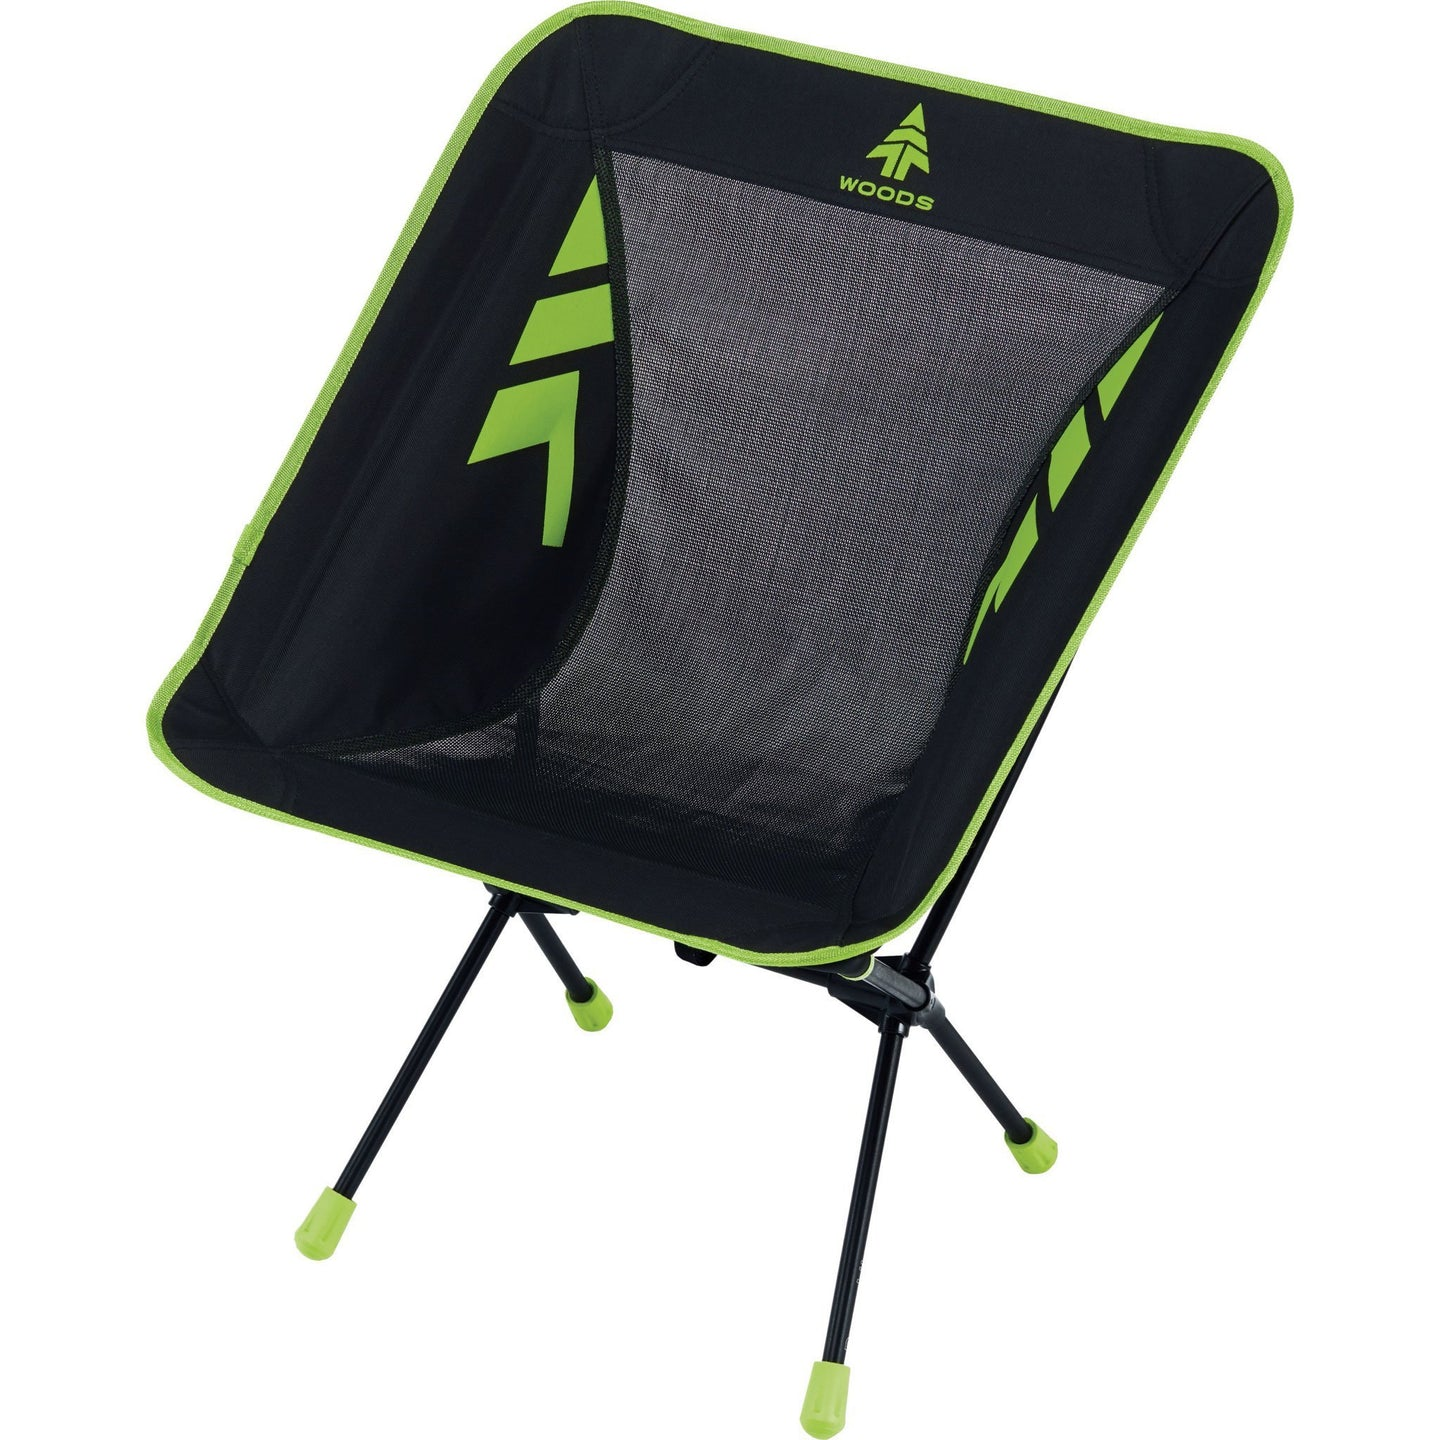 Woods Expedition Collapsible Lightweight Powerlite Camping Chair